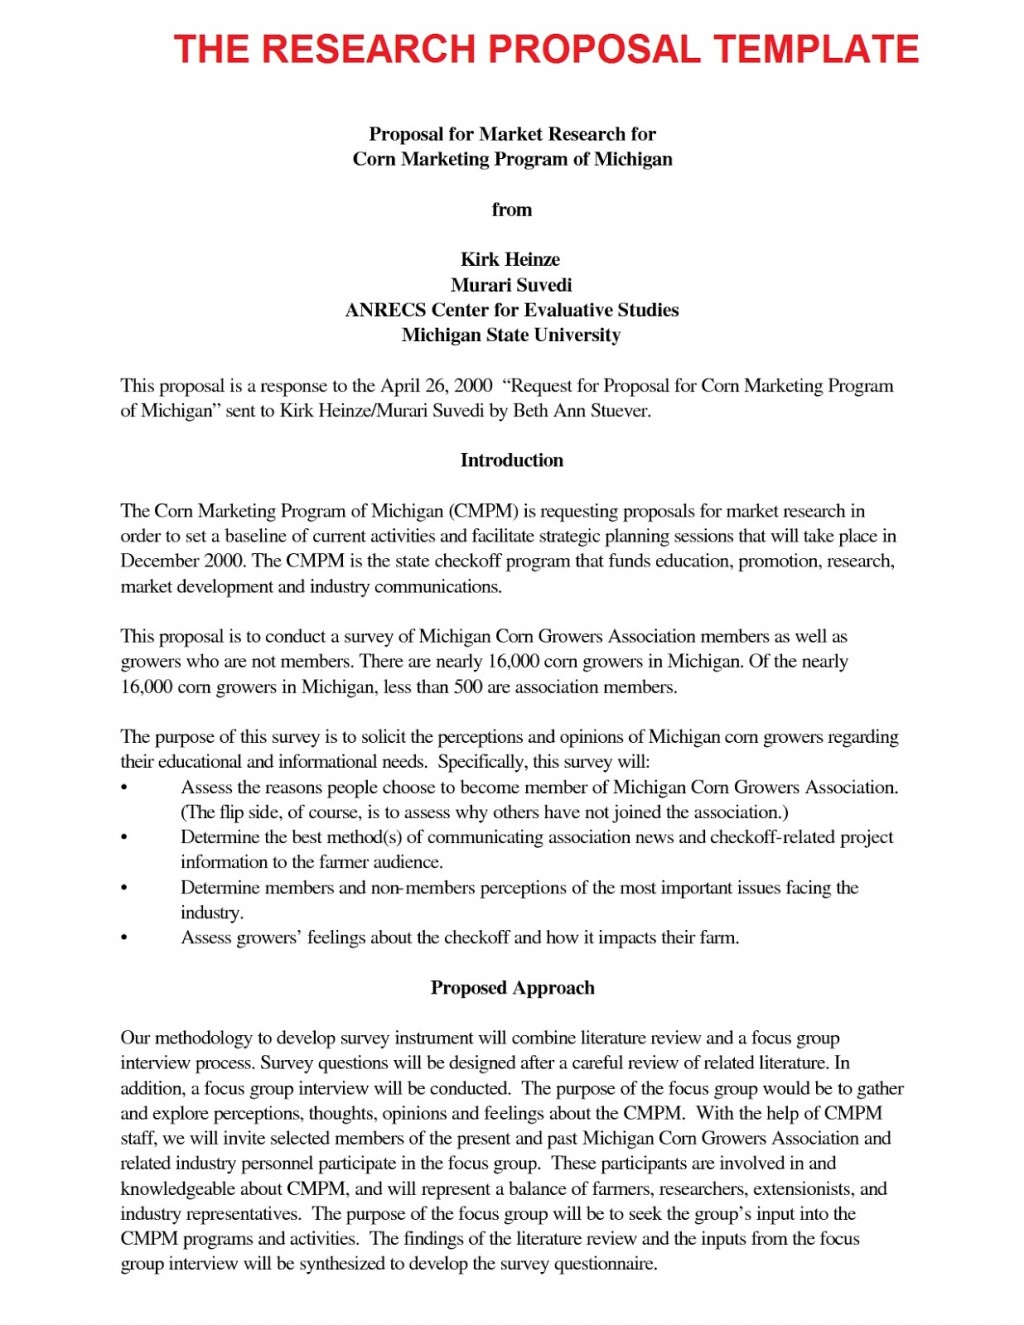 018 Research252520proposal252520template Essay Example How To Write Phenomenal A 5 Page Is It Possible In One Night Research Paper Outline Large